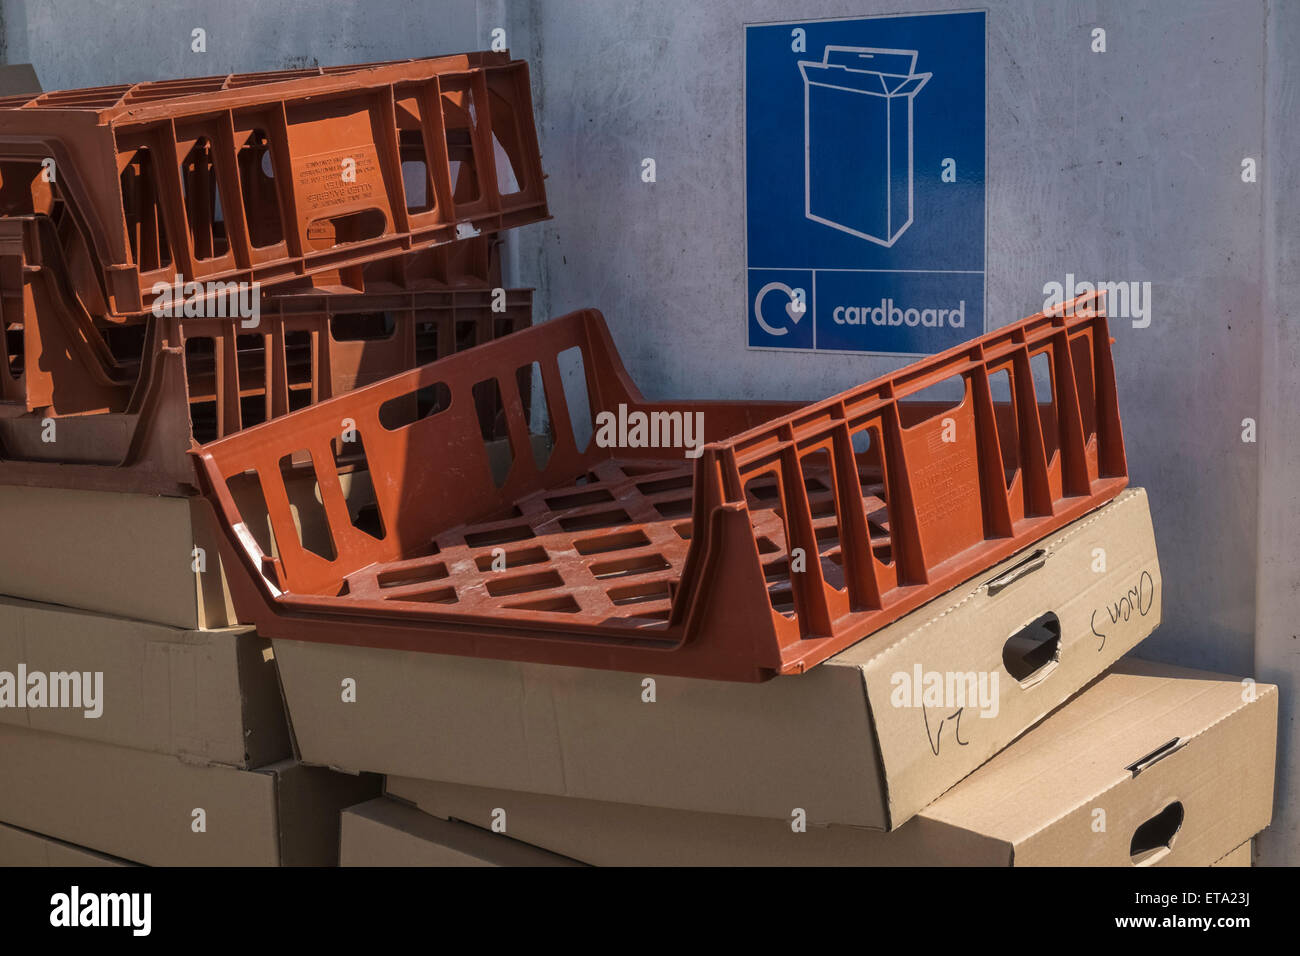 Cardboard storage point for market traders. - Stock Image